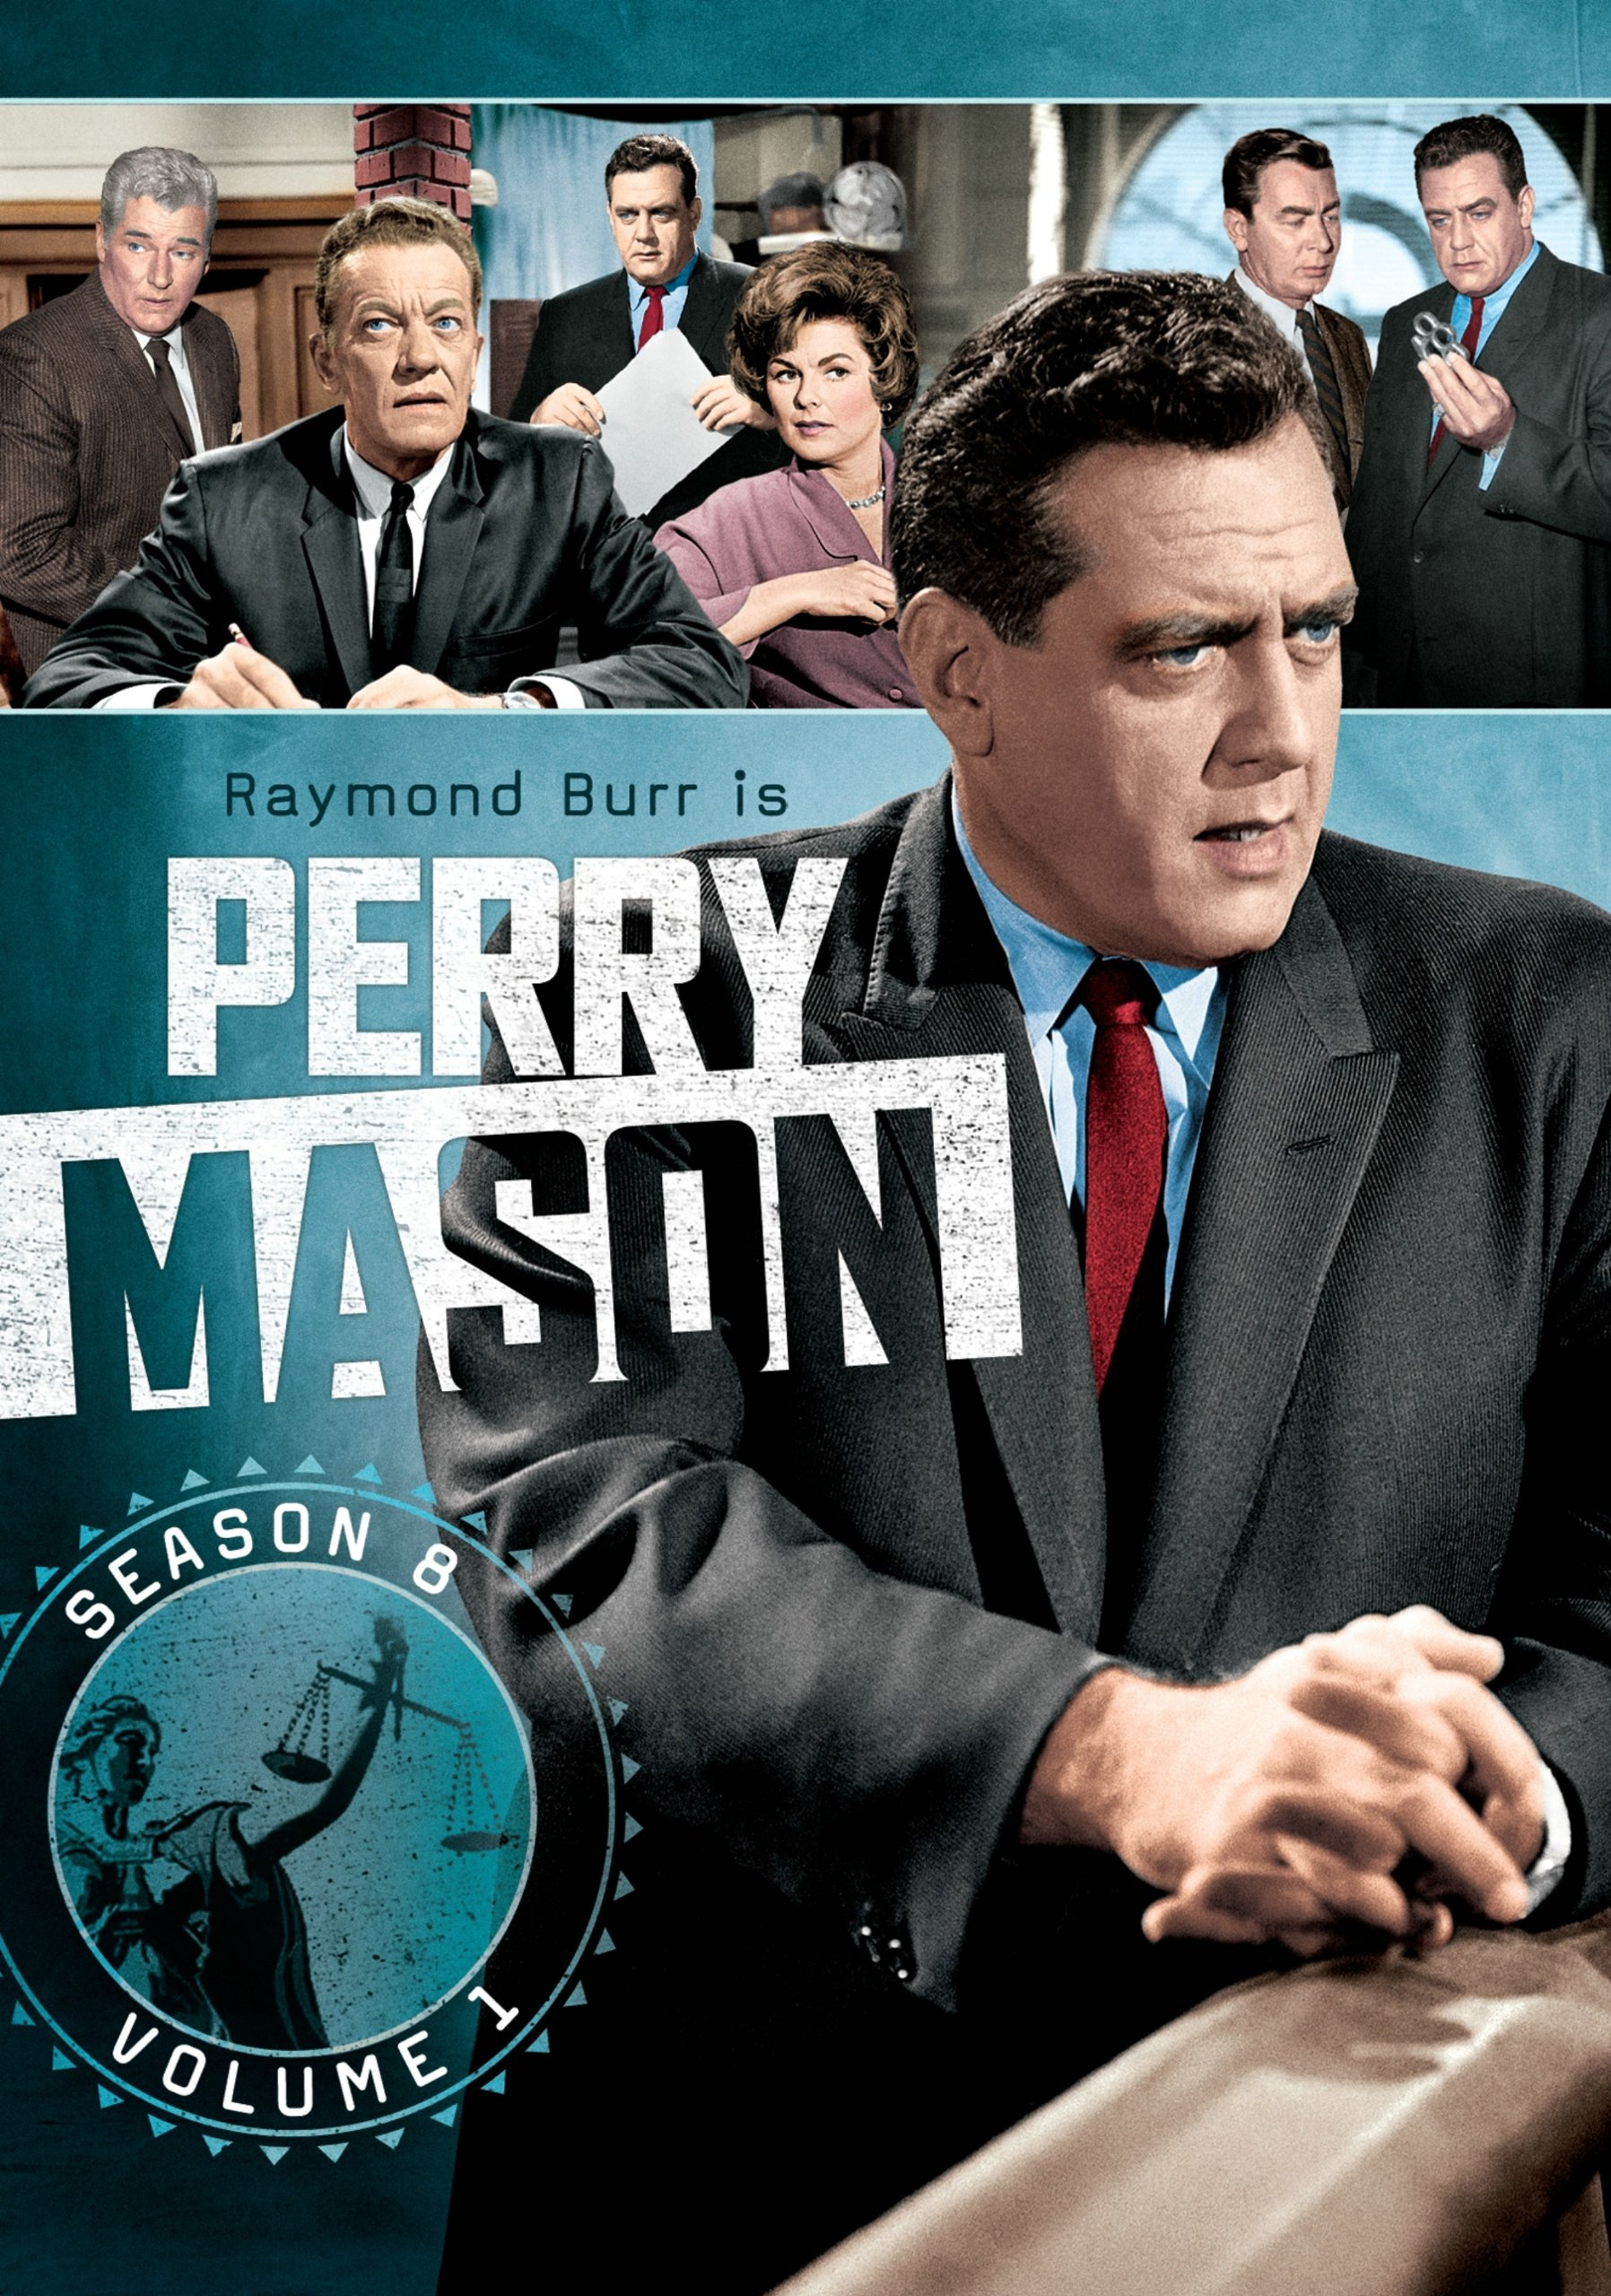 DVD : Perry Mason: Season 8 Volume 1 (Black & White, Full Frame, Boxed Set, 4 Disc)